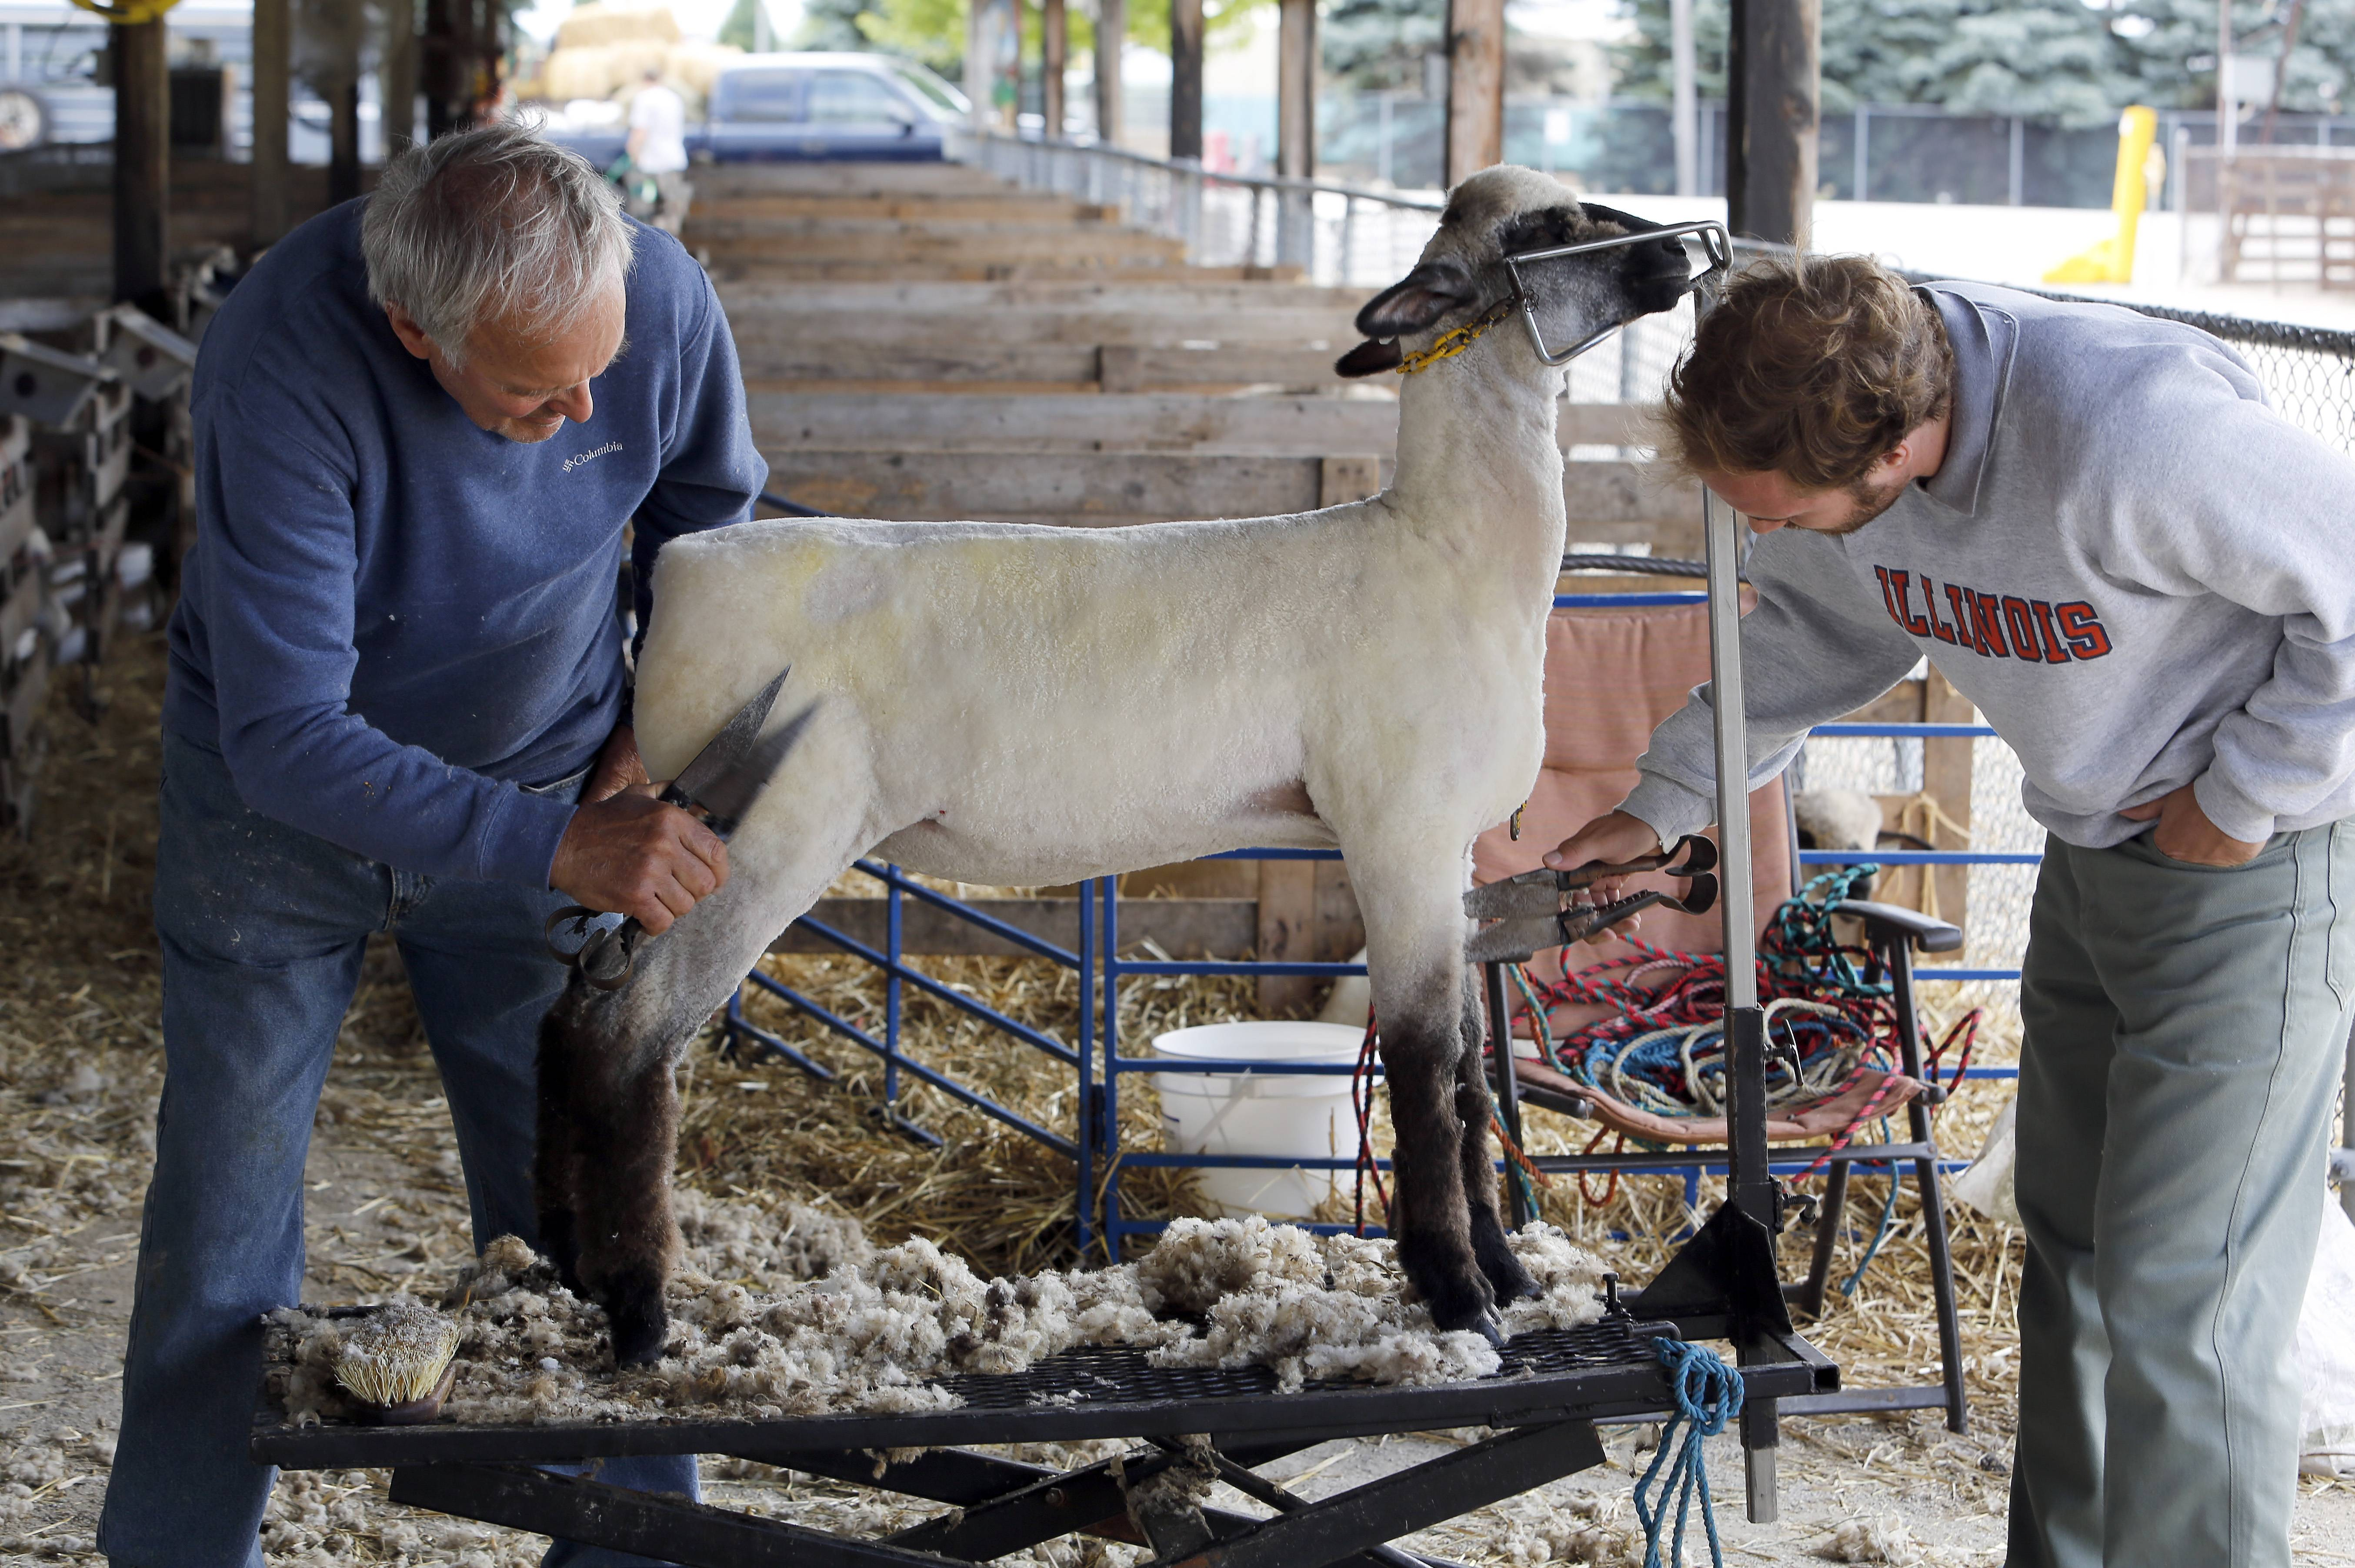 Richard Crome of Charleston, left, and Zack Klunick of Springfield trim a ewe at the Kane County Fairgrounds Tuesday in St. Charles. Trimming is generally done as the final cut after a sheep has been shorn. Crome said he has been coming to the Kane County Fair for more than 20 years.